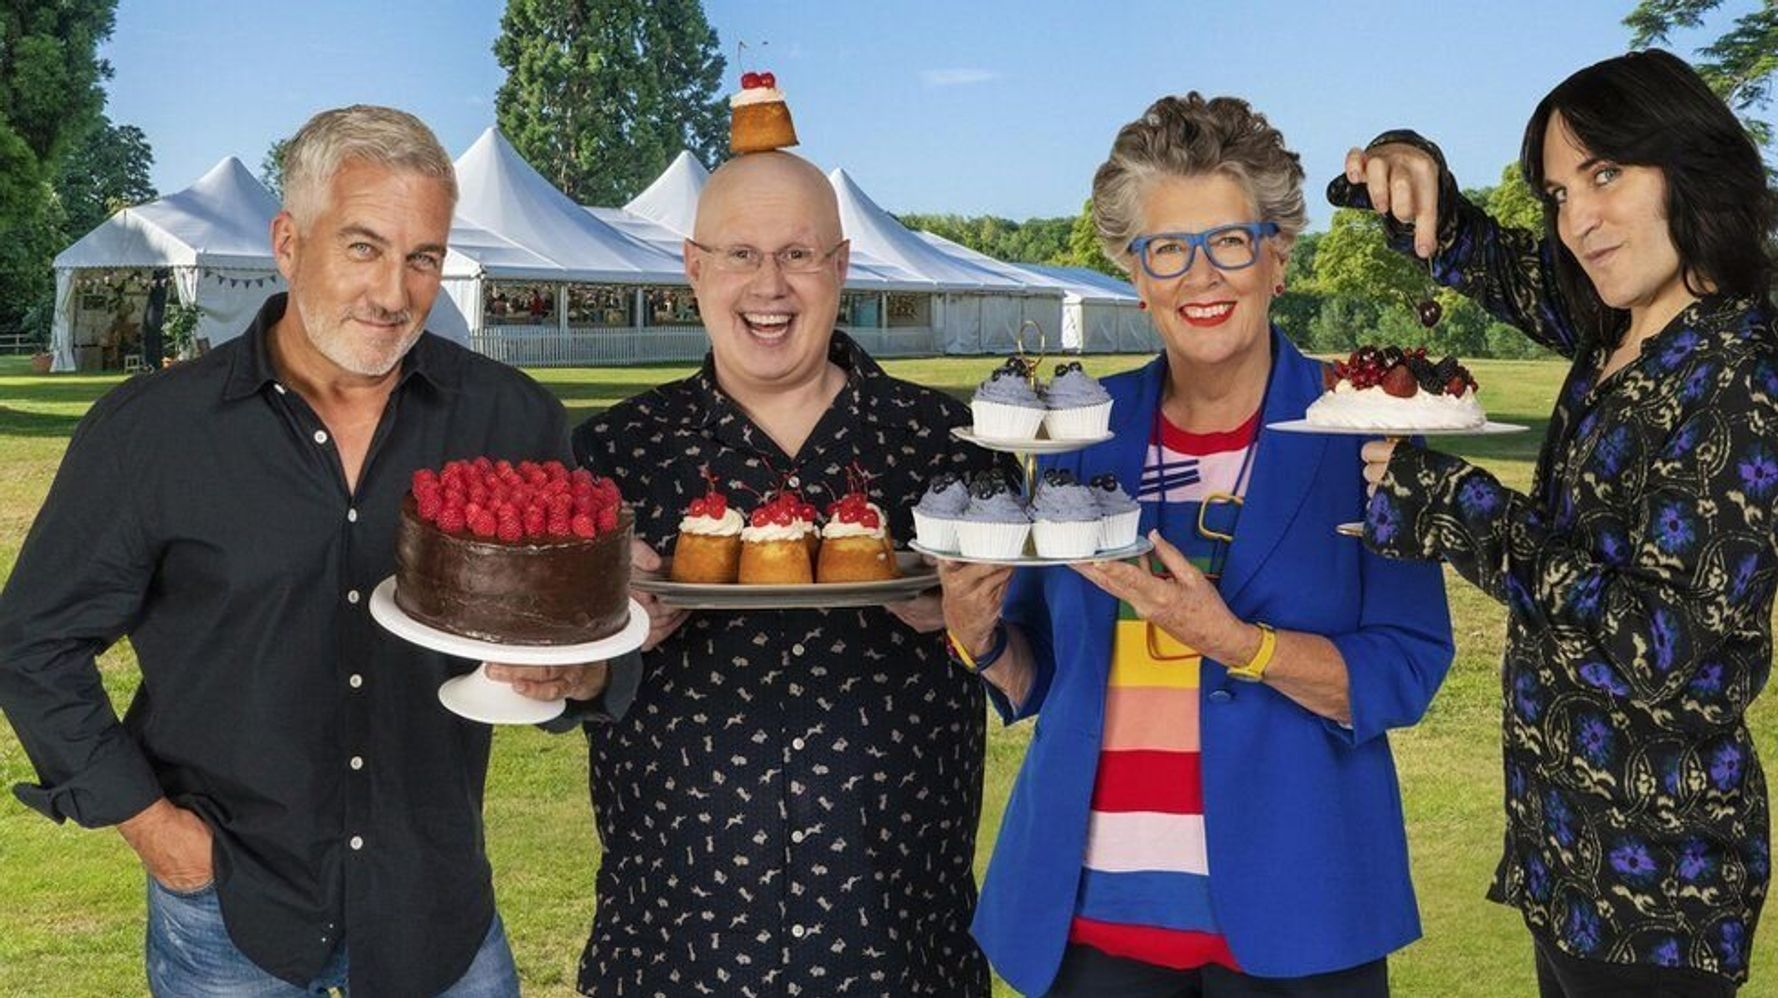 Like Overproved Bread, 'Great British Bake Off' Has Lost Some Of Its Form